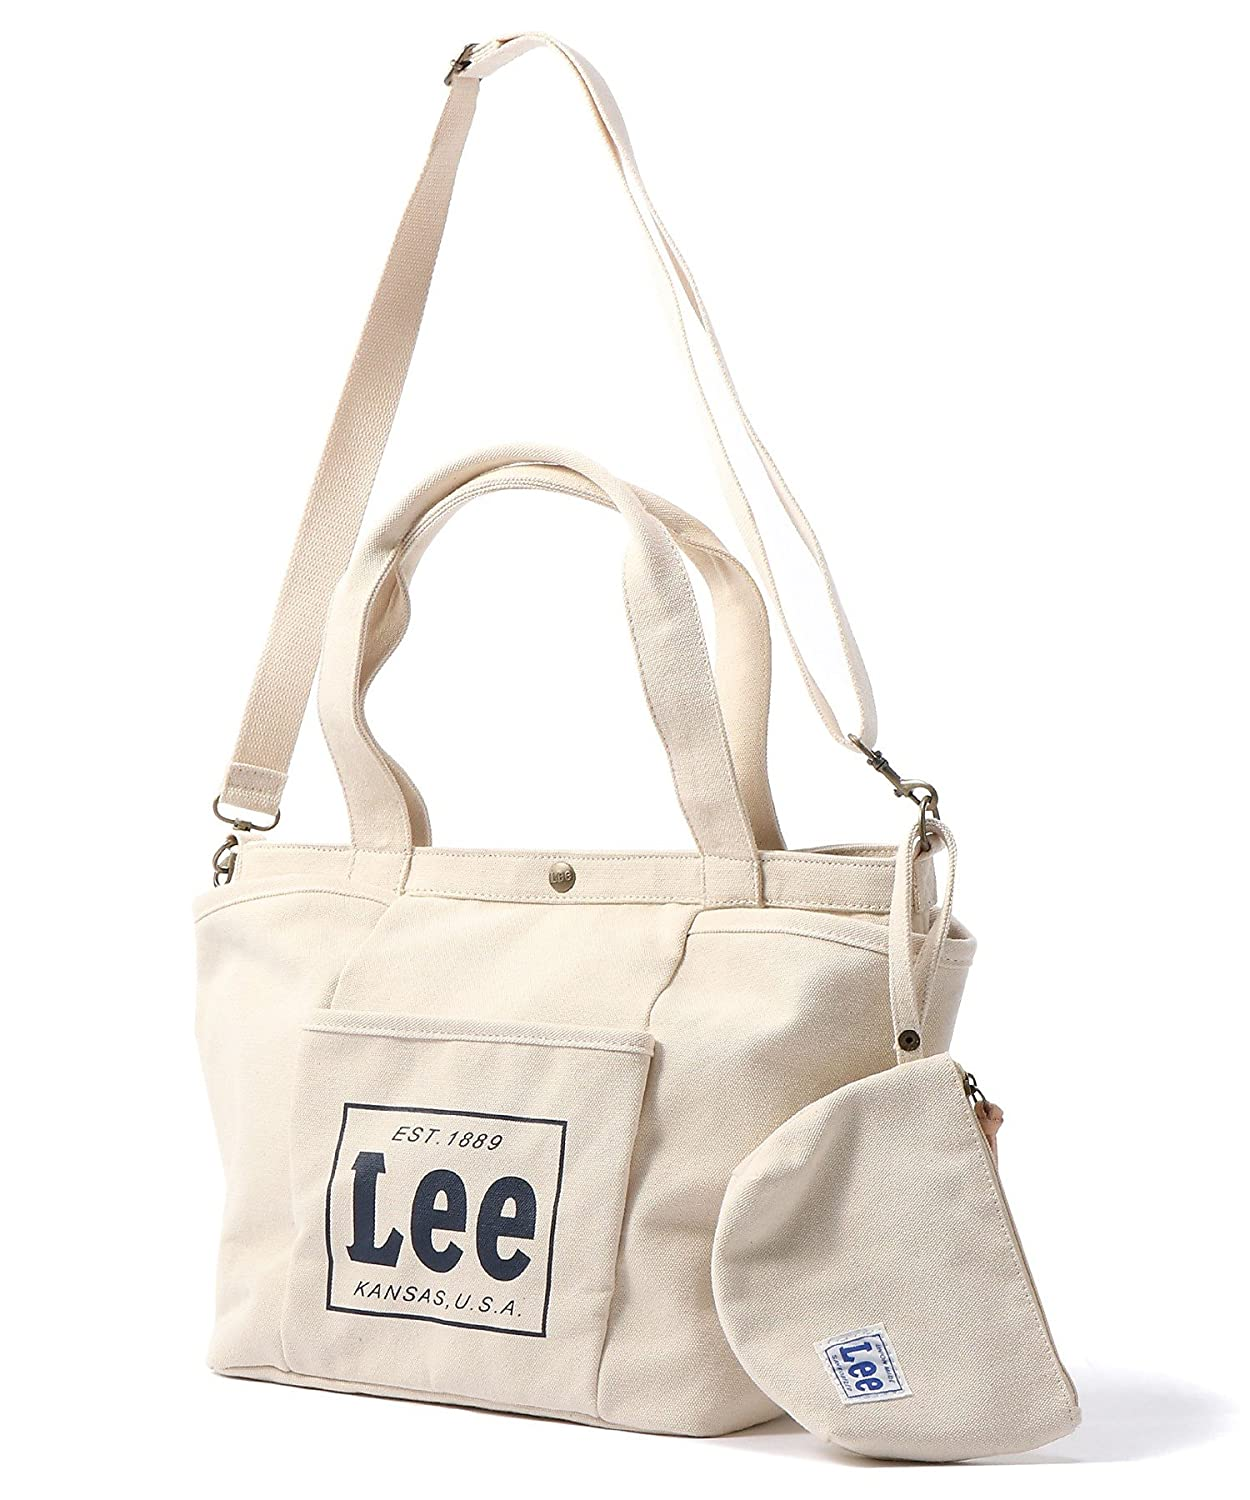 Lee(リー) マザーズバッグ B077JFTG87  A One Size